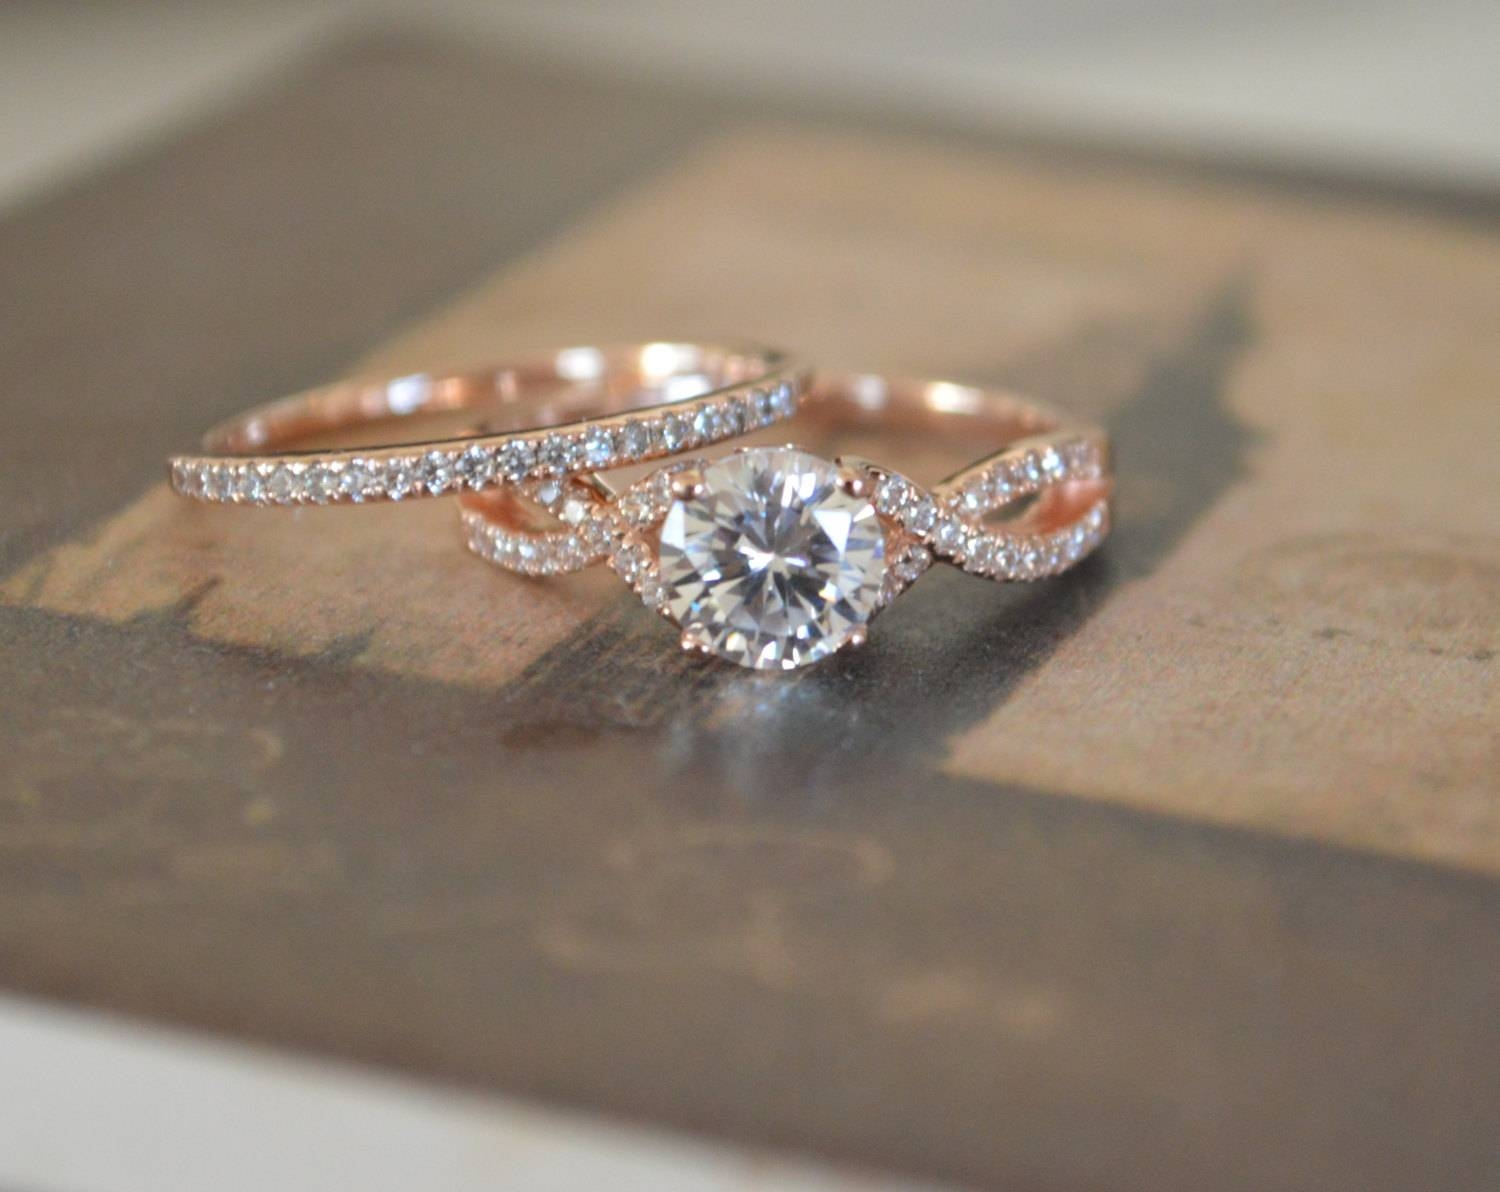 Engagement Ring Band Setting Rose Gold Twisted Band Intended For Infinity Band Wedding Rings (View 7 of 15)